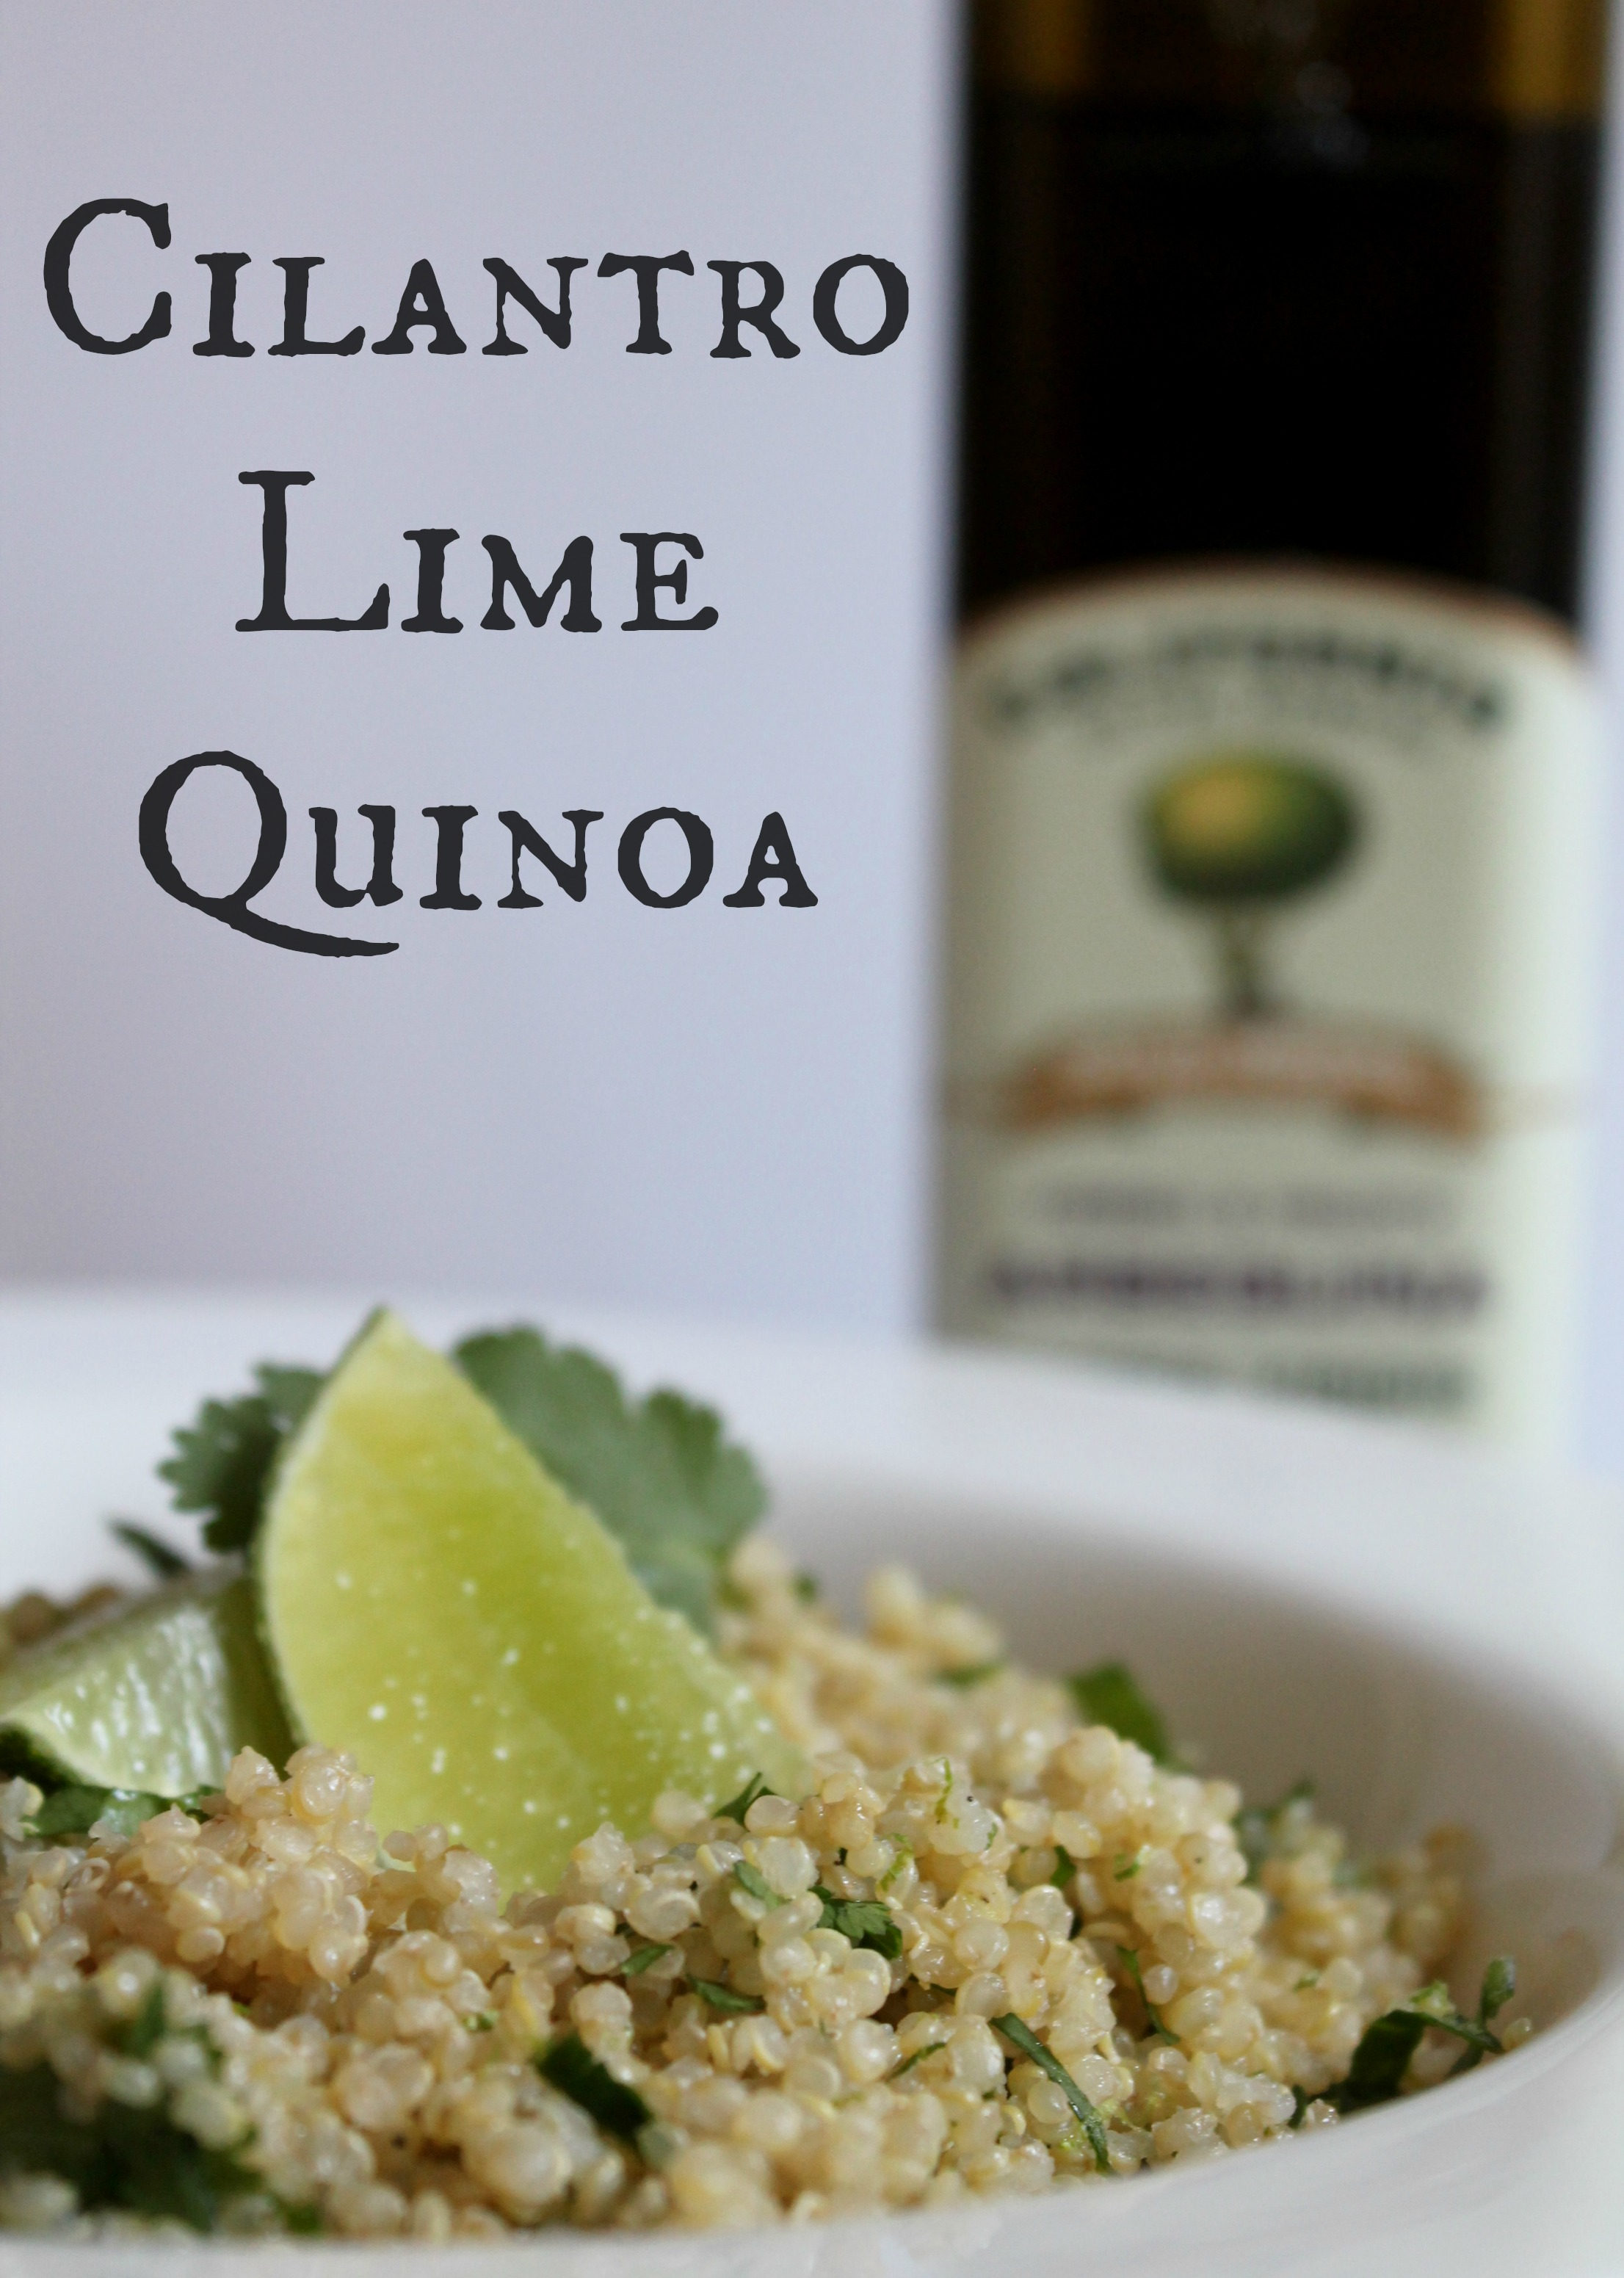 Cilantro Lime Quinoa - Cooking with Books